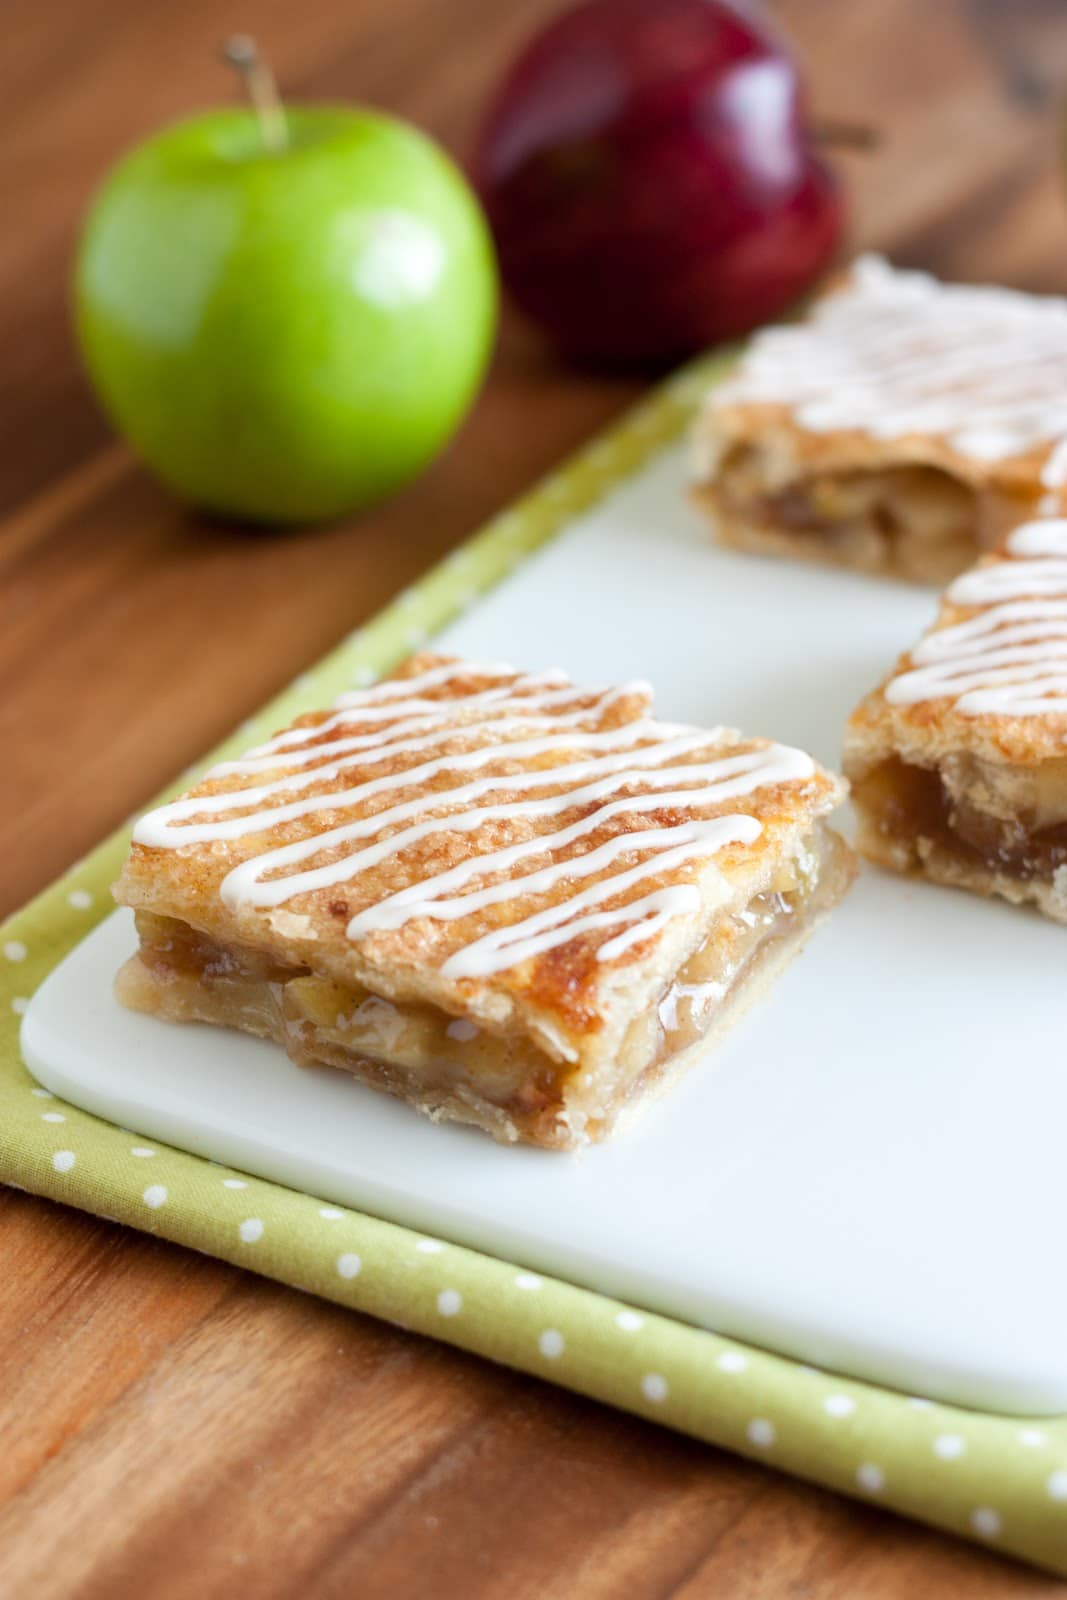 Apple Pie Bars - Cooking Classy